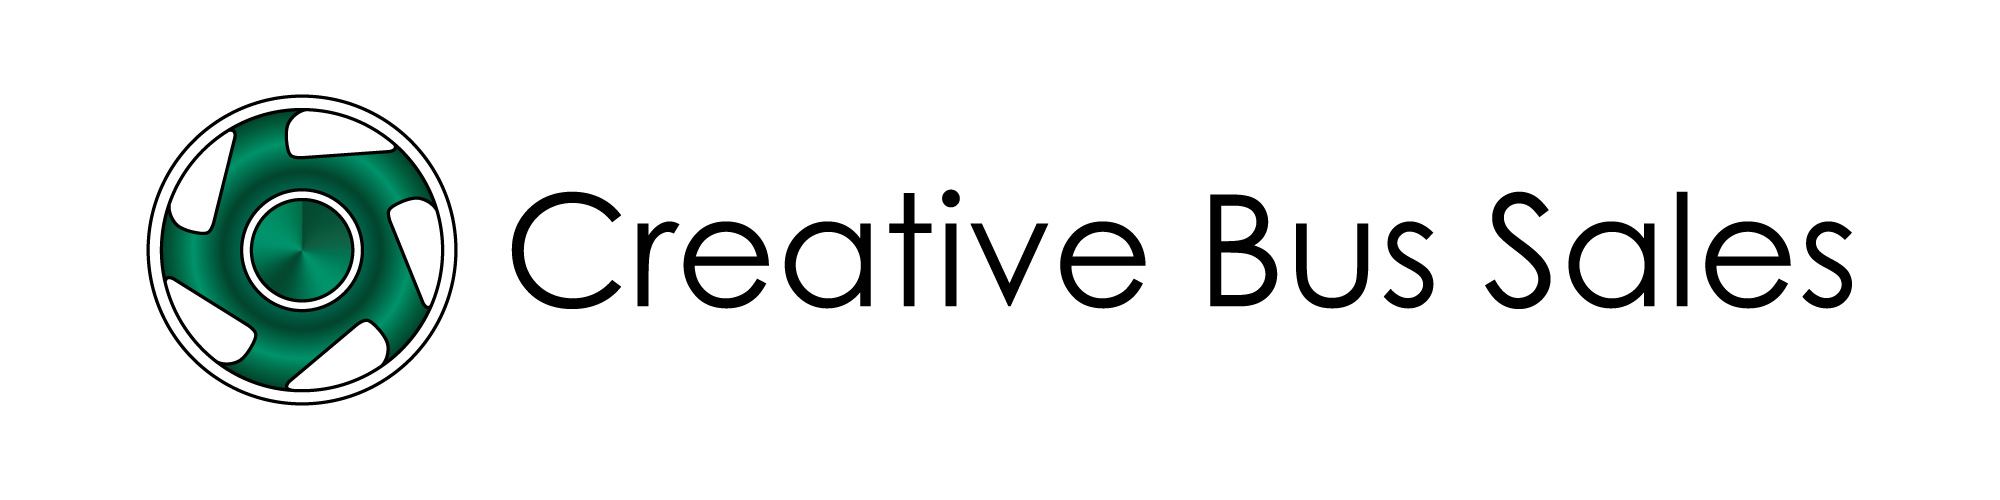 Creative Bus Sales, Inc. Logo 2017